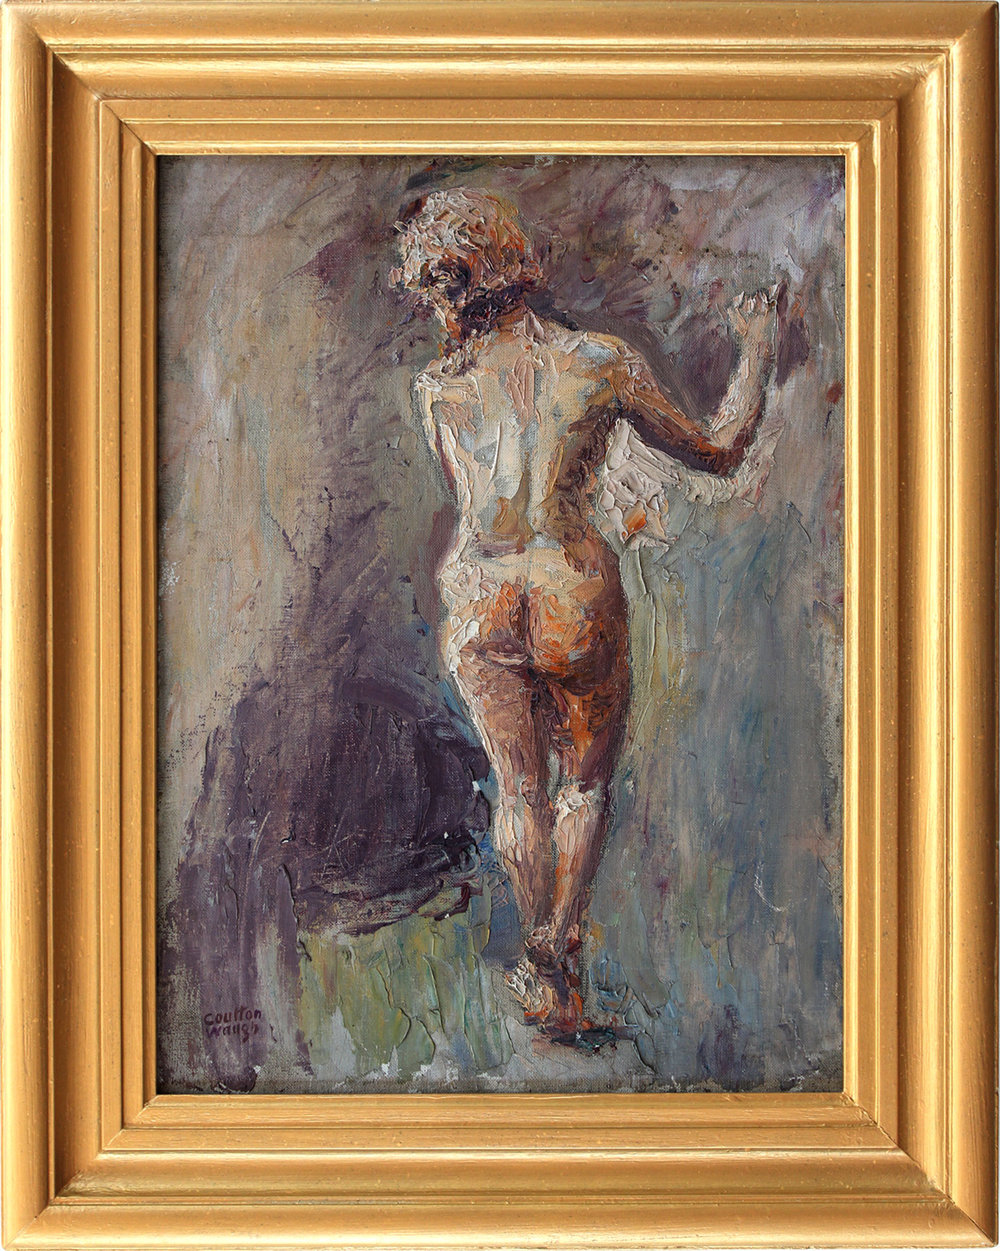 Figurative Nude Woman, Circa 1950